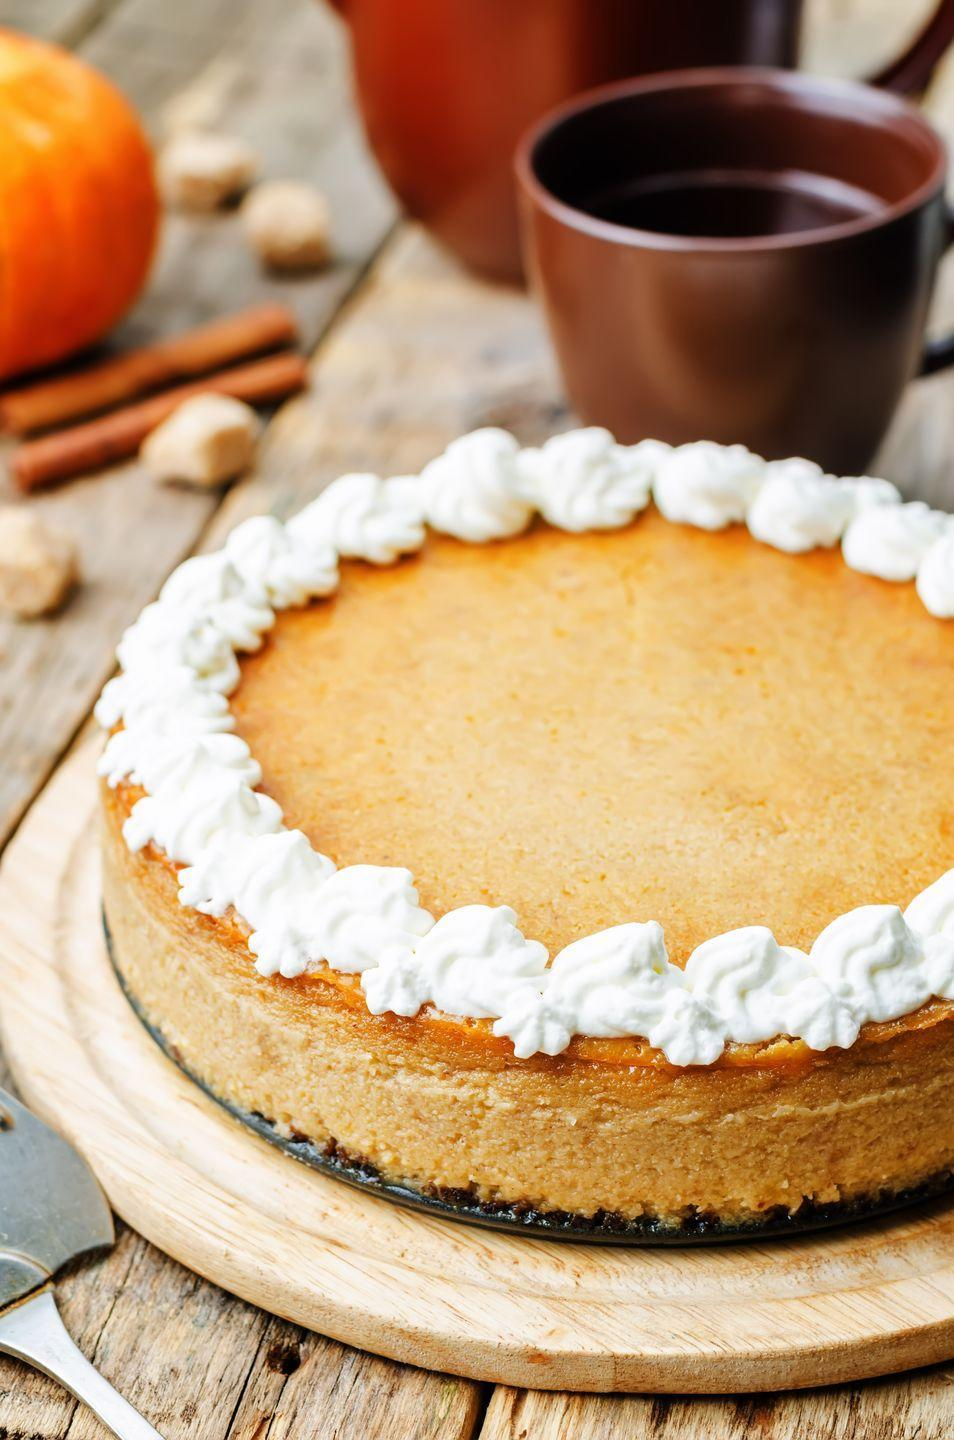 "<p>Give your usual pumpkin pie an indulgently creamy makeover. </p><p><em><a href=""https://www.goodhousekeeping.com/food-recipes/a8416/pumpkin-cheesecake-pie-ghk1107/"" rel=""nofollow noopener"" target=""_blank"" data-ylk=""slk:Get the recipe for Pumpkin Cheesecake Pie »"" class=""link rapid-noclick-resp"">Get the recipe for Pumpkin Cheesecake Pie »</a></em> </p>"